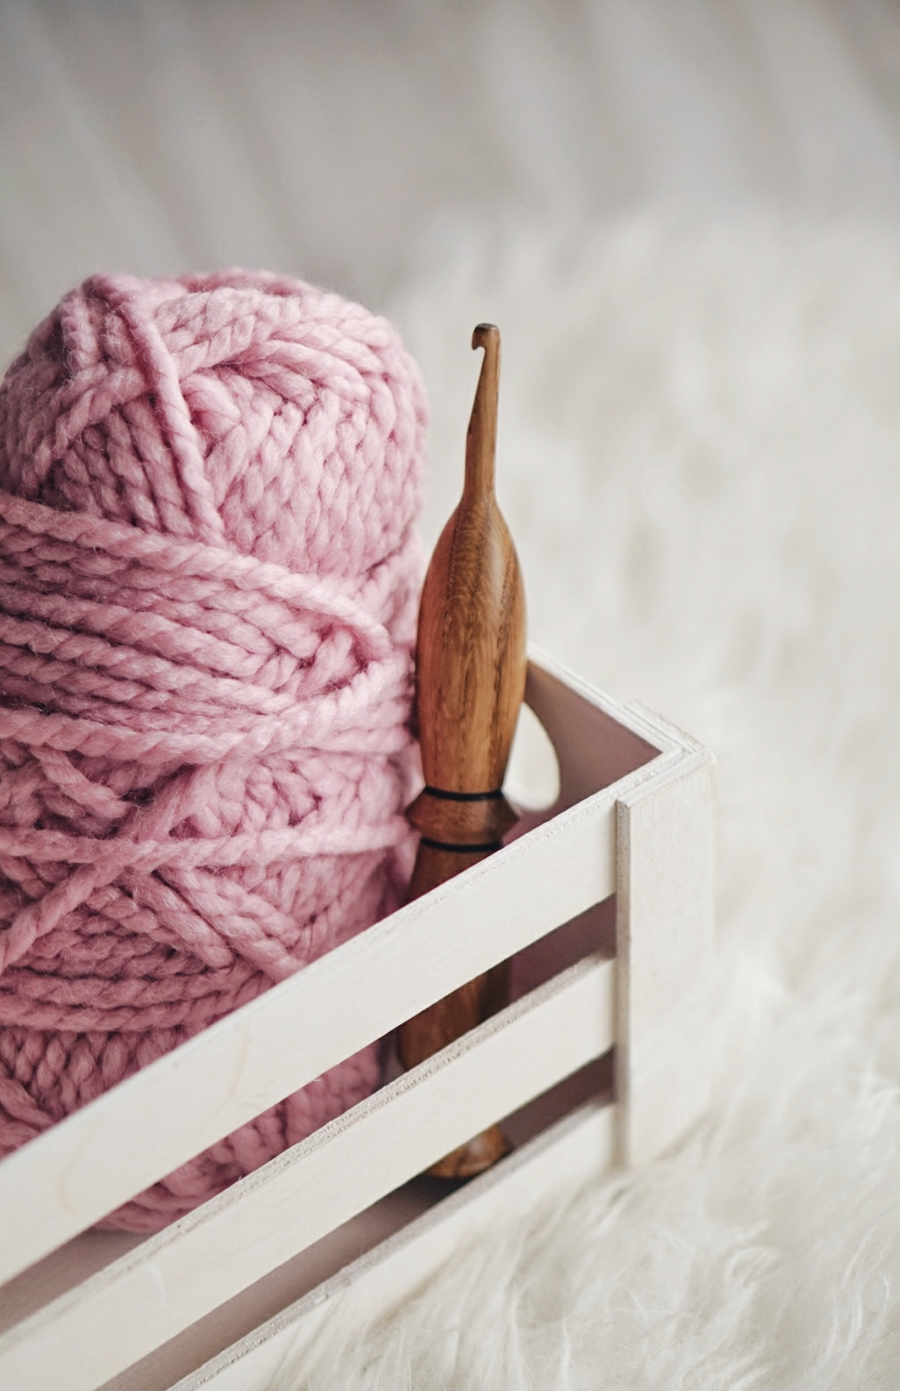 NEW CROCHET HOOK COLLECTION